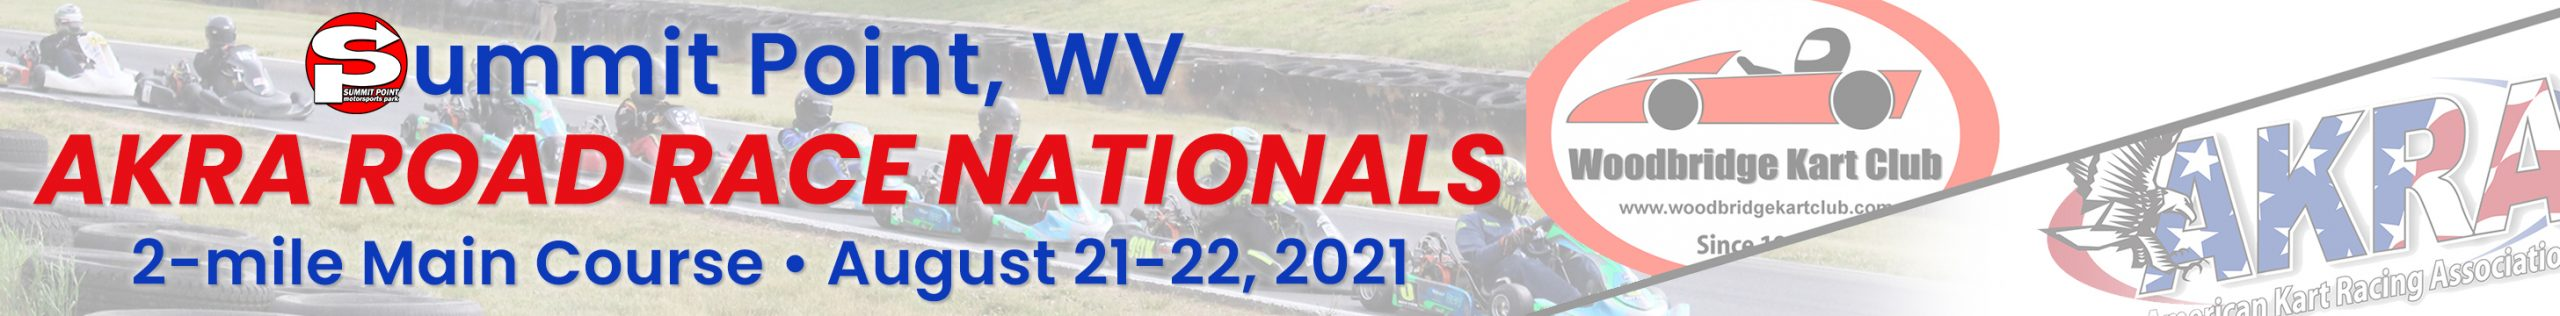 Summit Point AKRA Road Race Nationals August 21-22, 2021